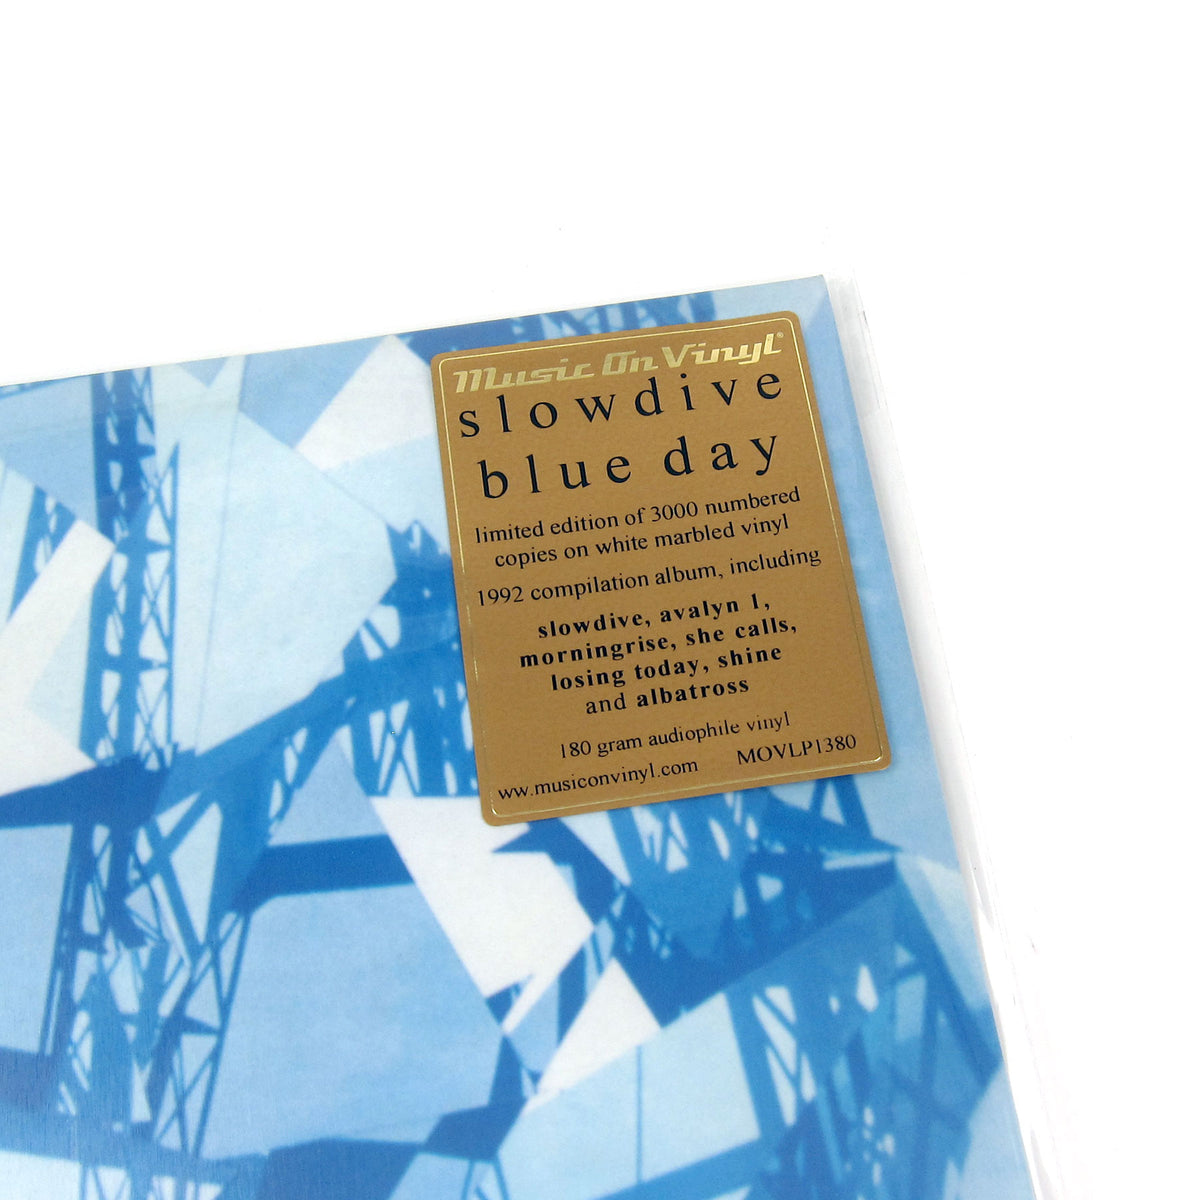 Slowdive: Blue Day (Music On Vinyl 180g, Colored Vinyl)